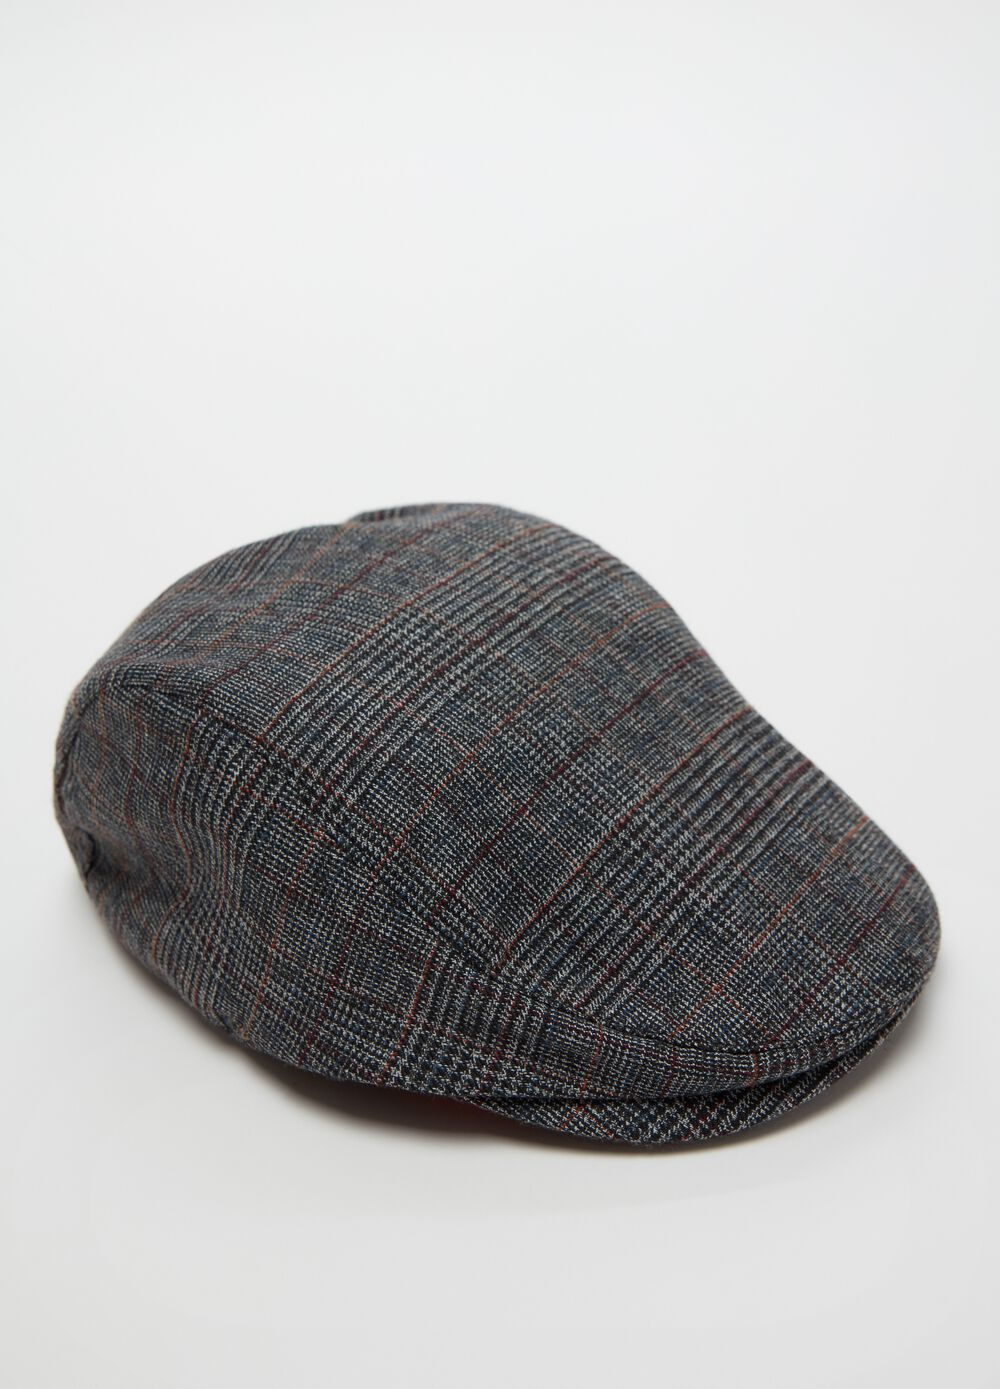 Soft check patterned flat cap